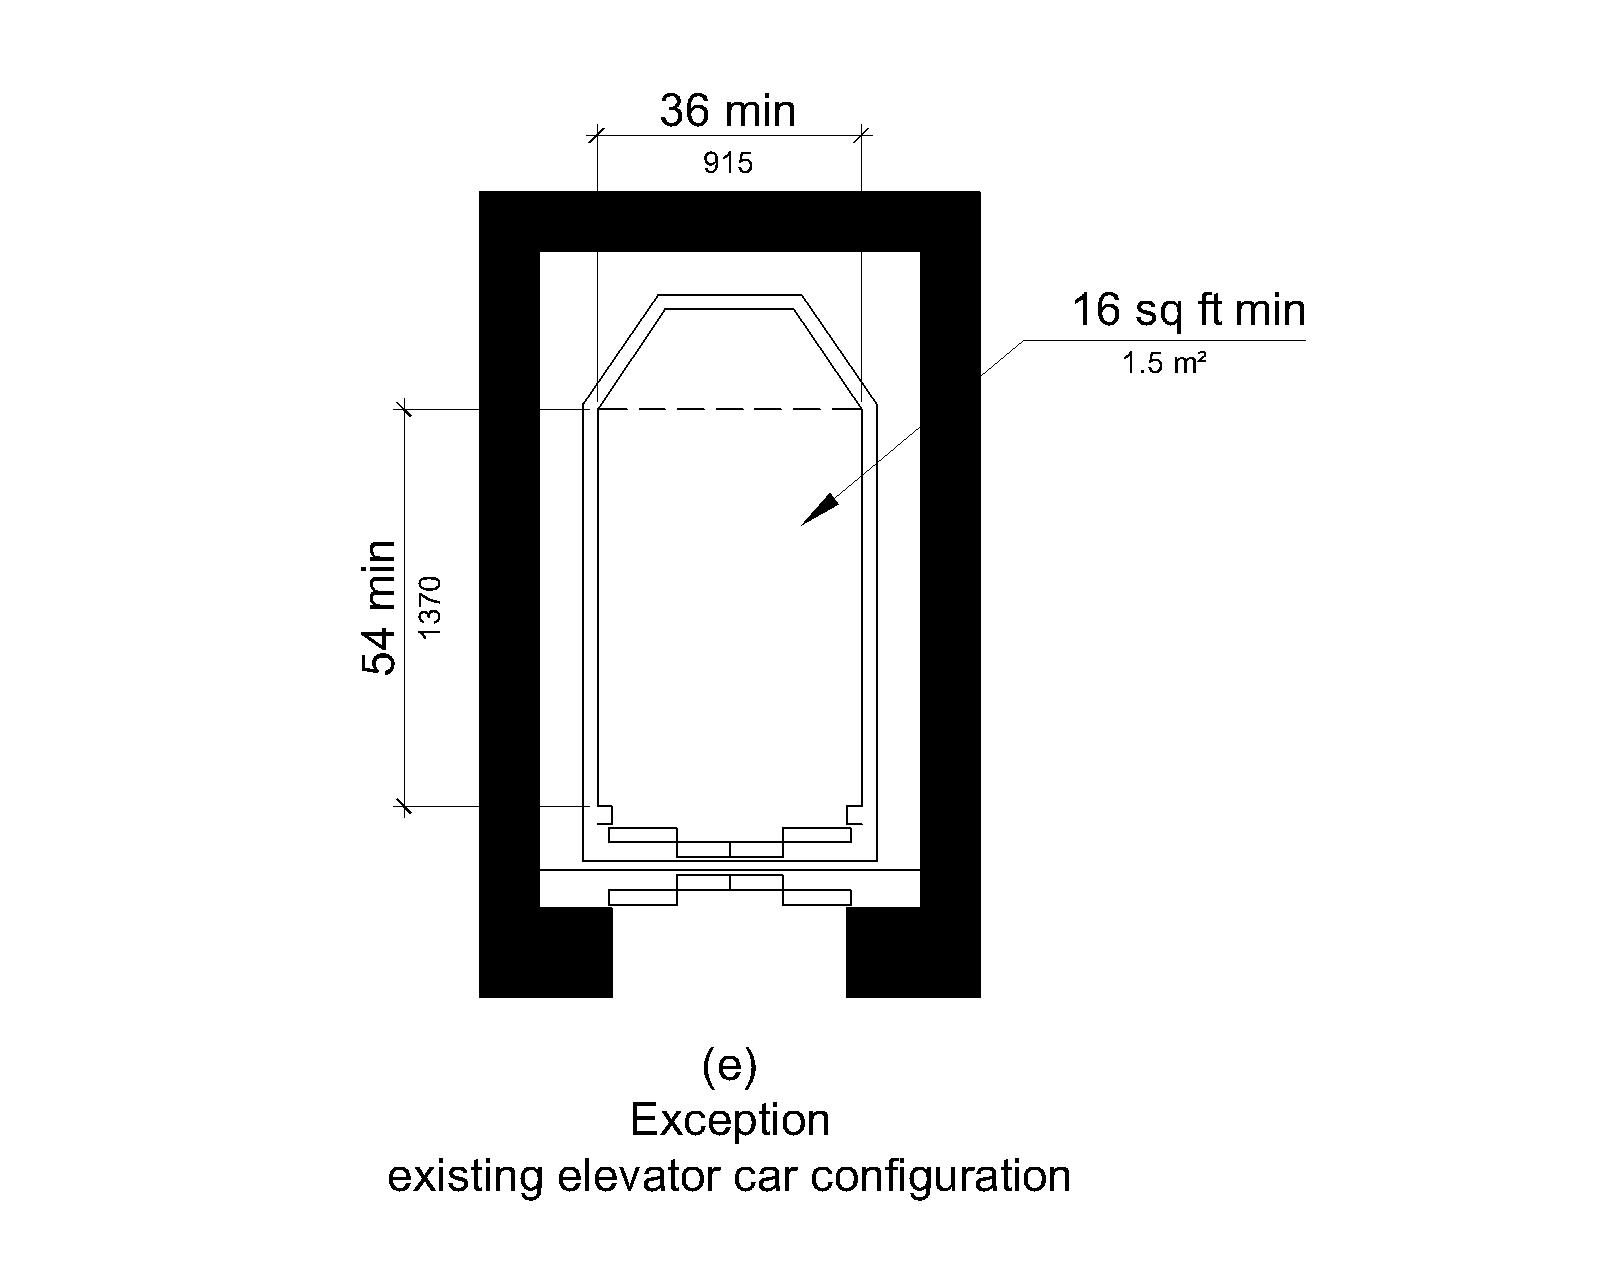 Figure (e) illustrates the exception for an existing elevator car configuration. The car depth is 54 inches (1370 mm) minimum, the width is 39 inches (915 mm) minimum, and the clear deck surface area is 16 square feet (1.5 square m) minimum.